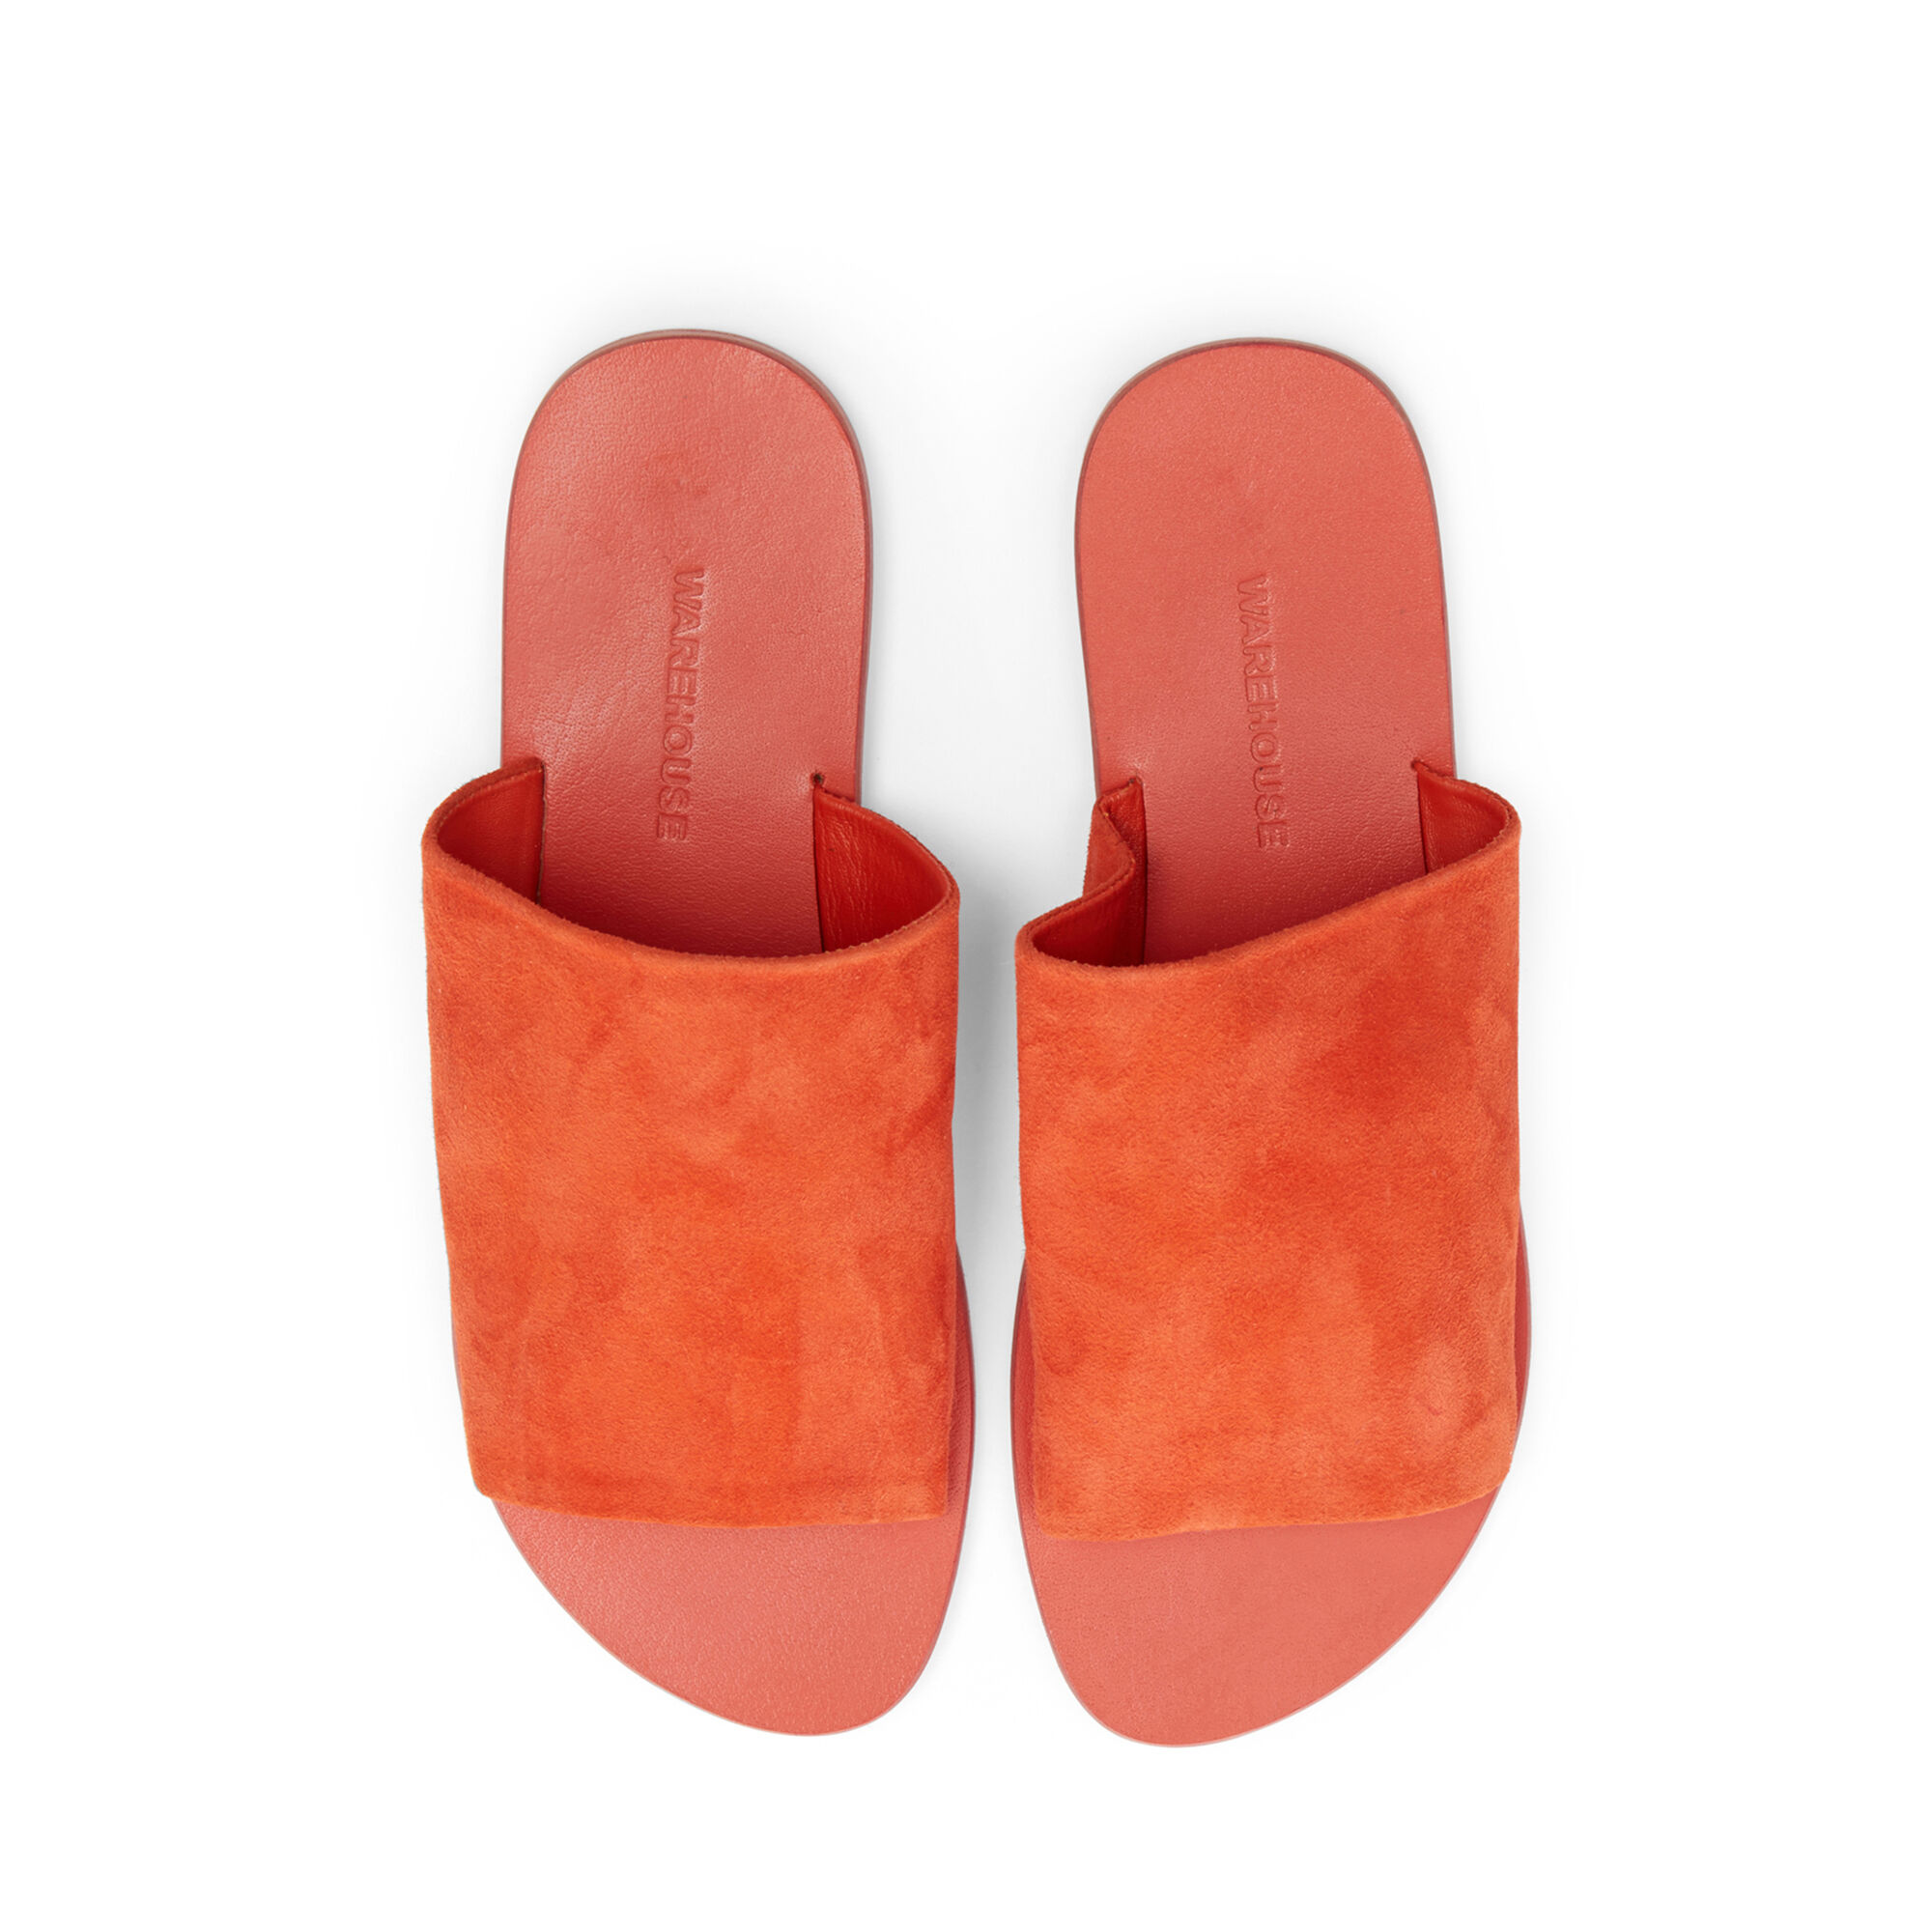 Warehouse, SUEDE MULE SANDALS Bright Red 1